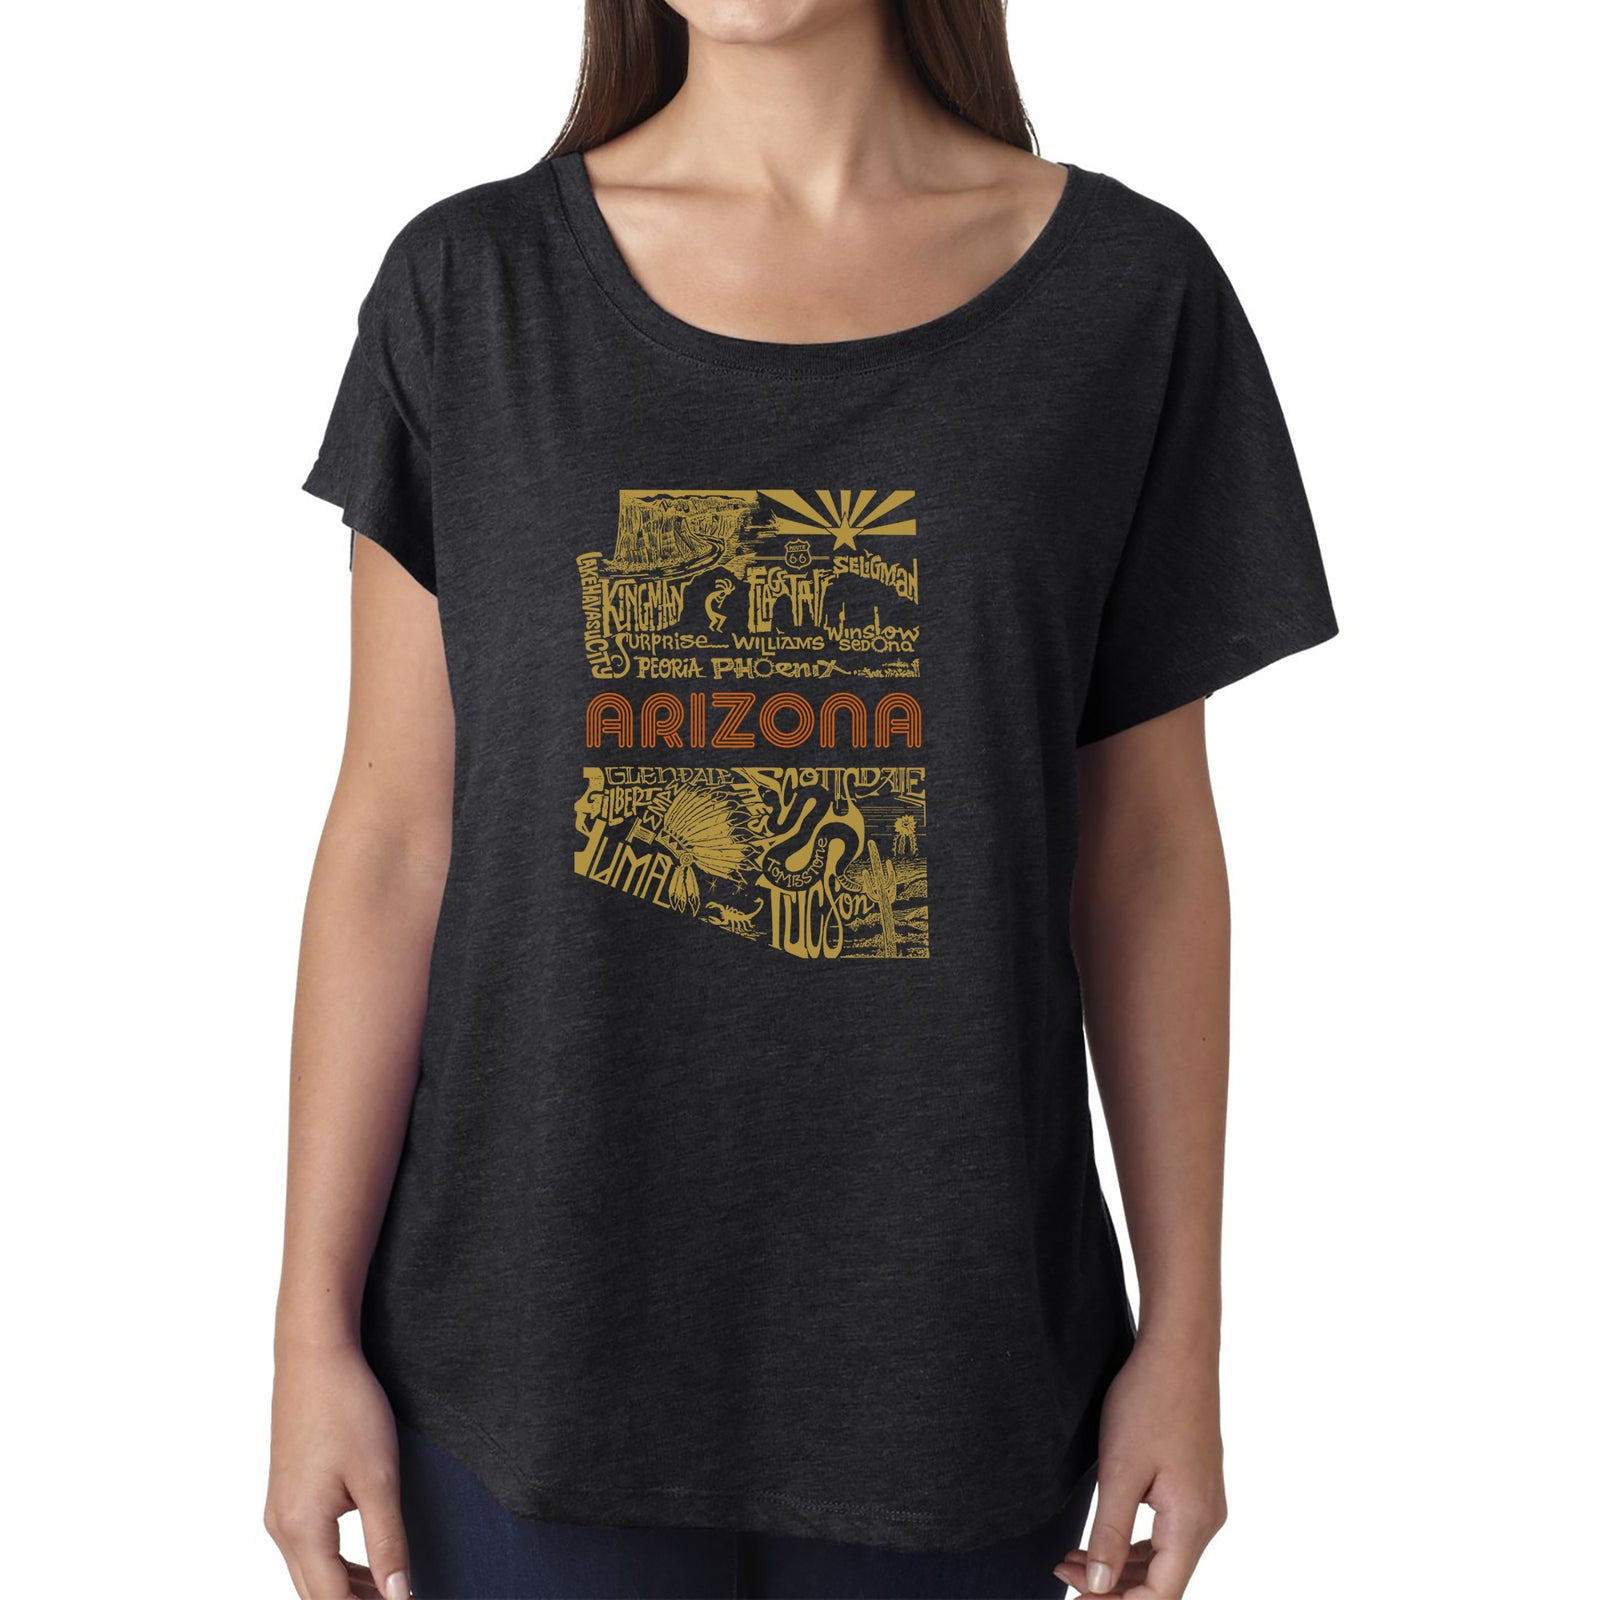 Women's Loose Fit Dolman Cut Word Art Shirt - Az Pics